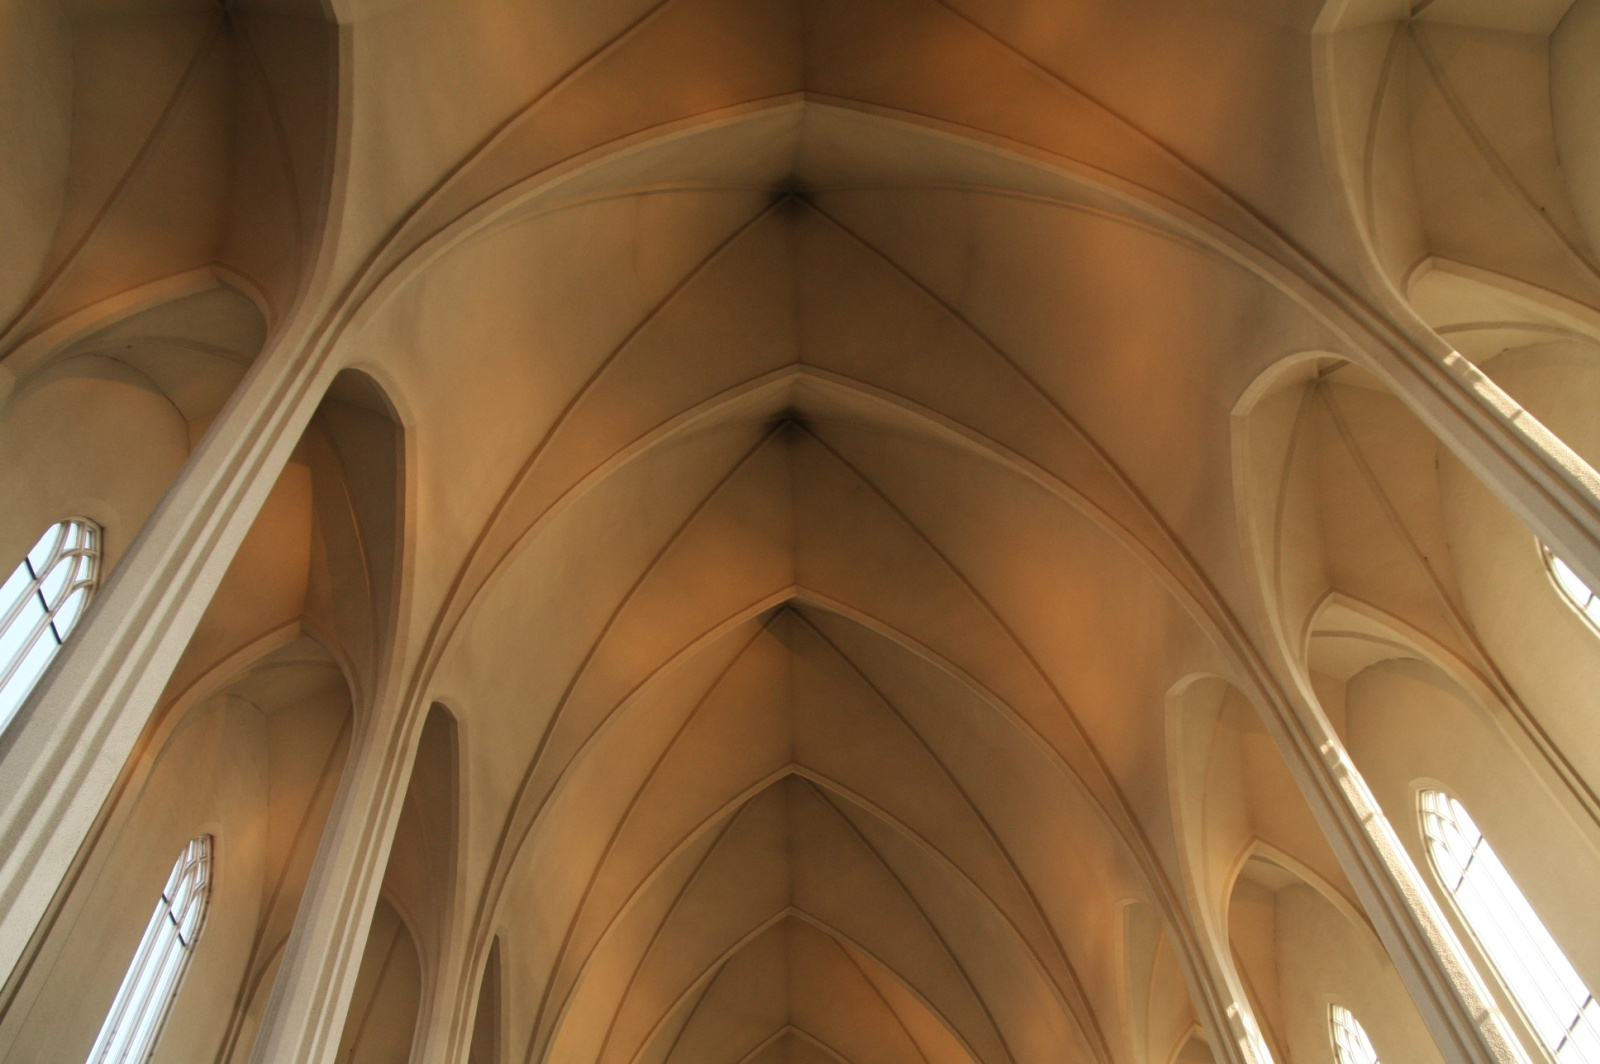 The ceiling of the modernistic Hallgrímskirkja